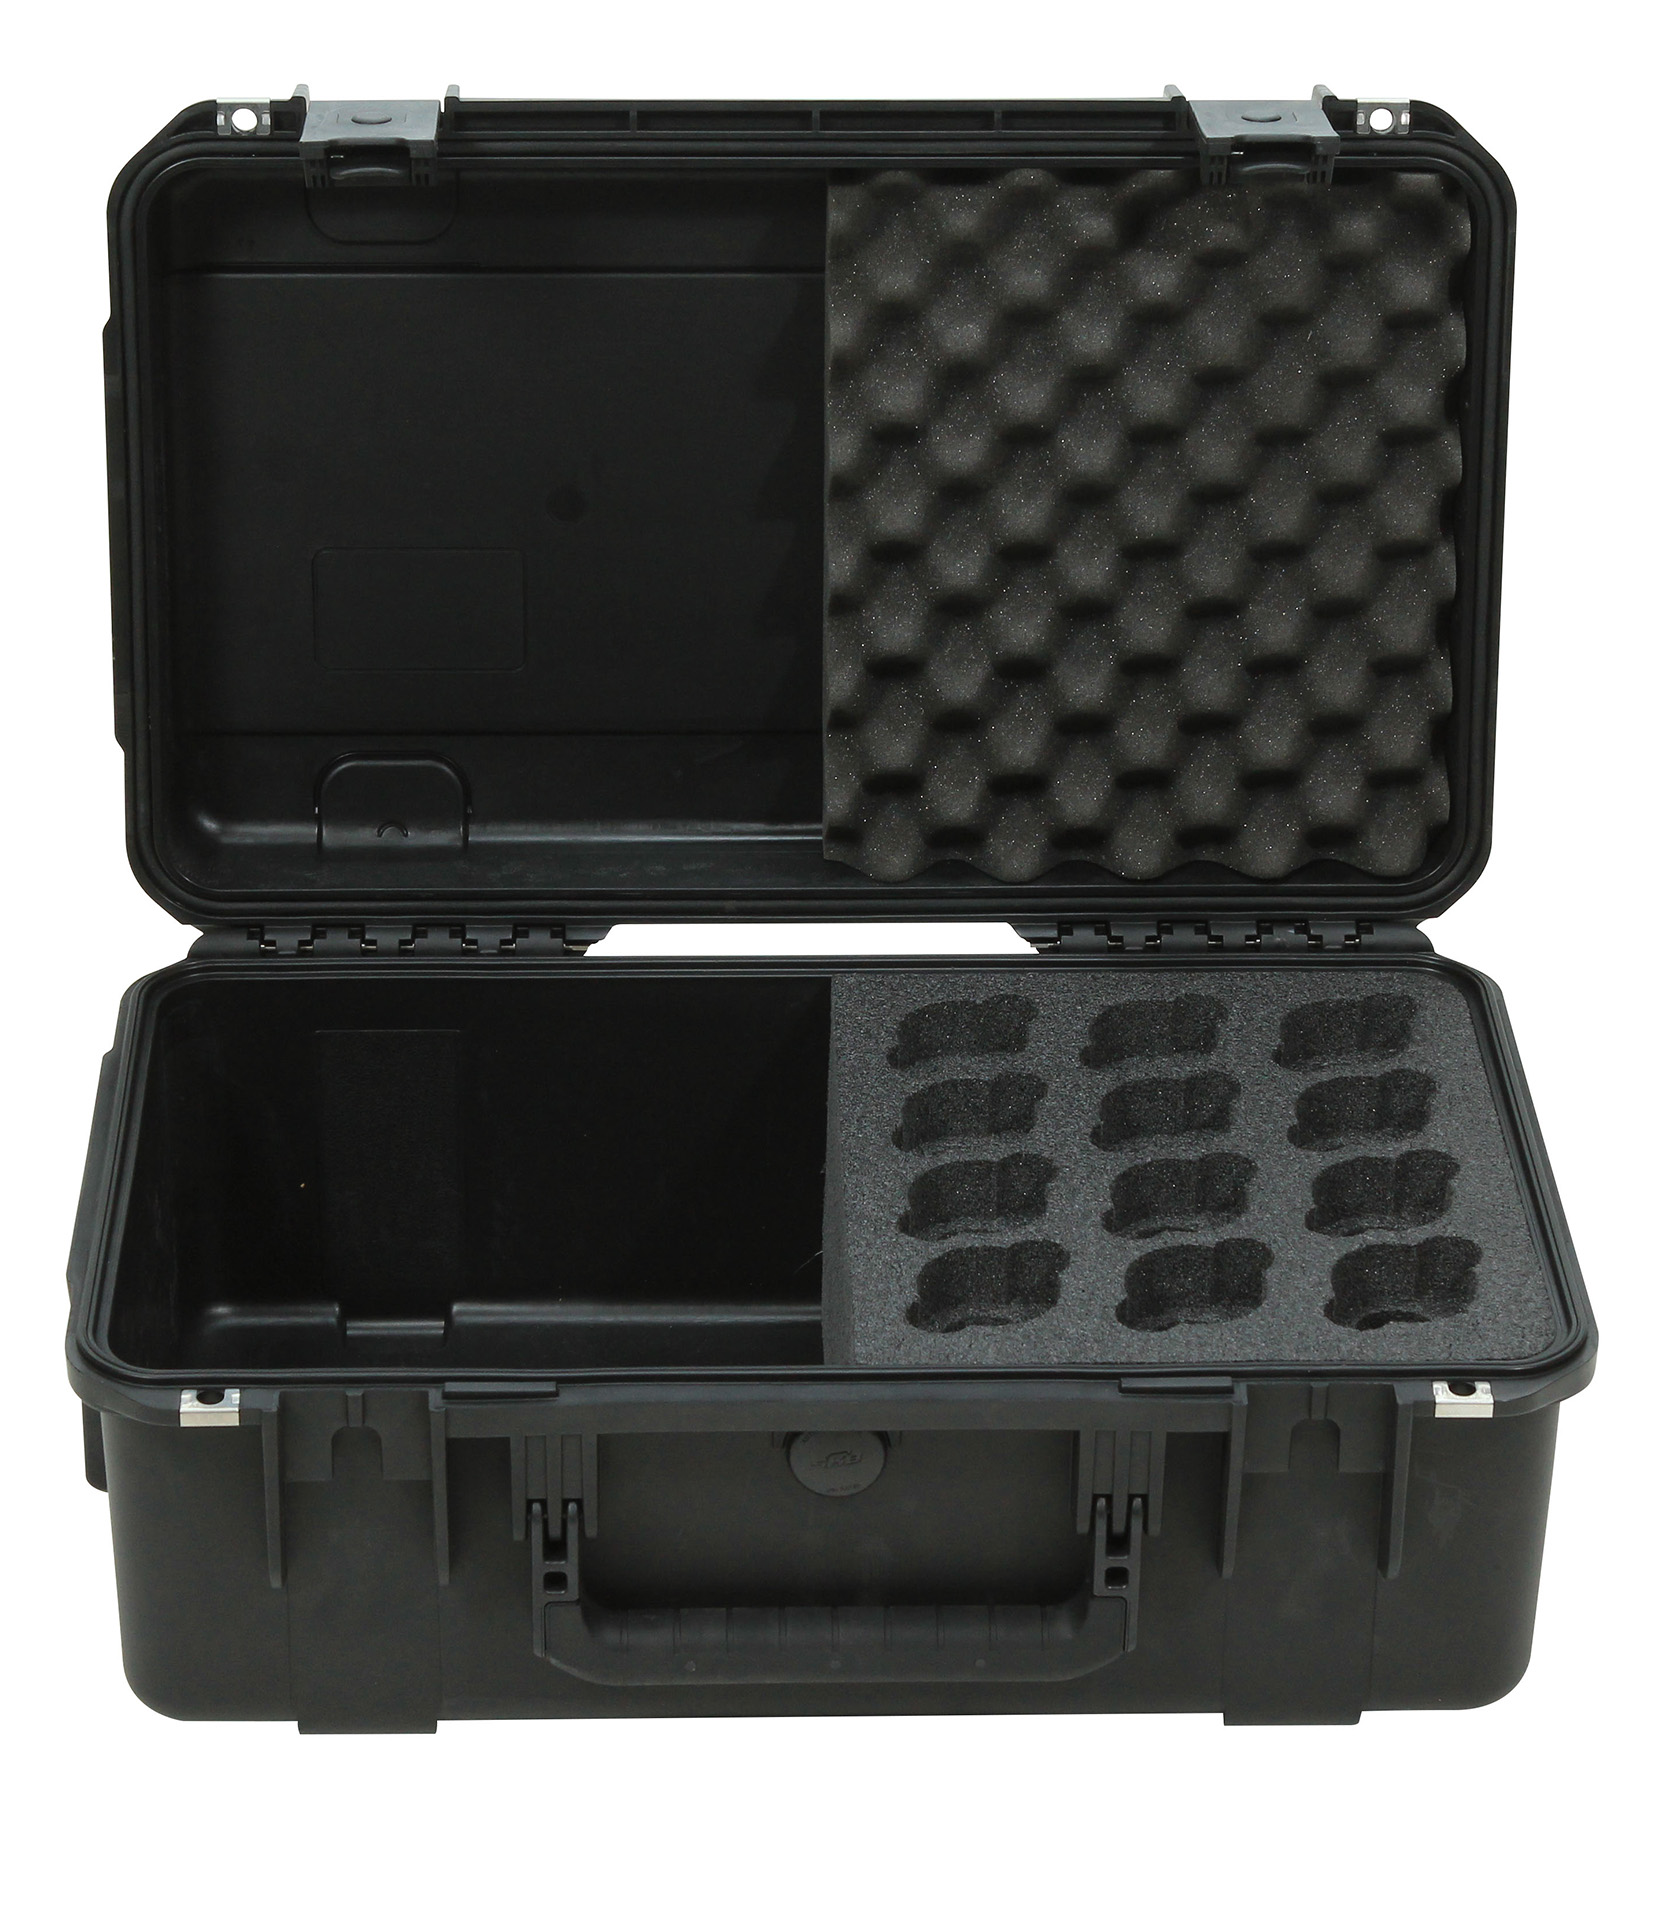 skb - 3I 2011 MC12 iSeries Injection Molded case w foam - Melody House Musical Instruments